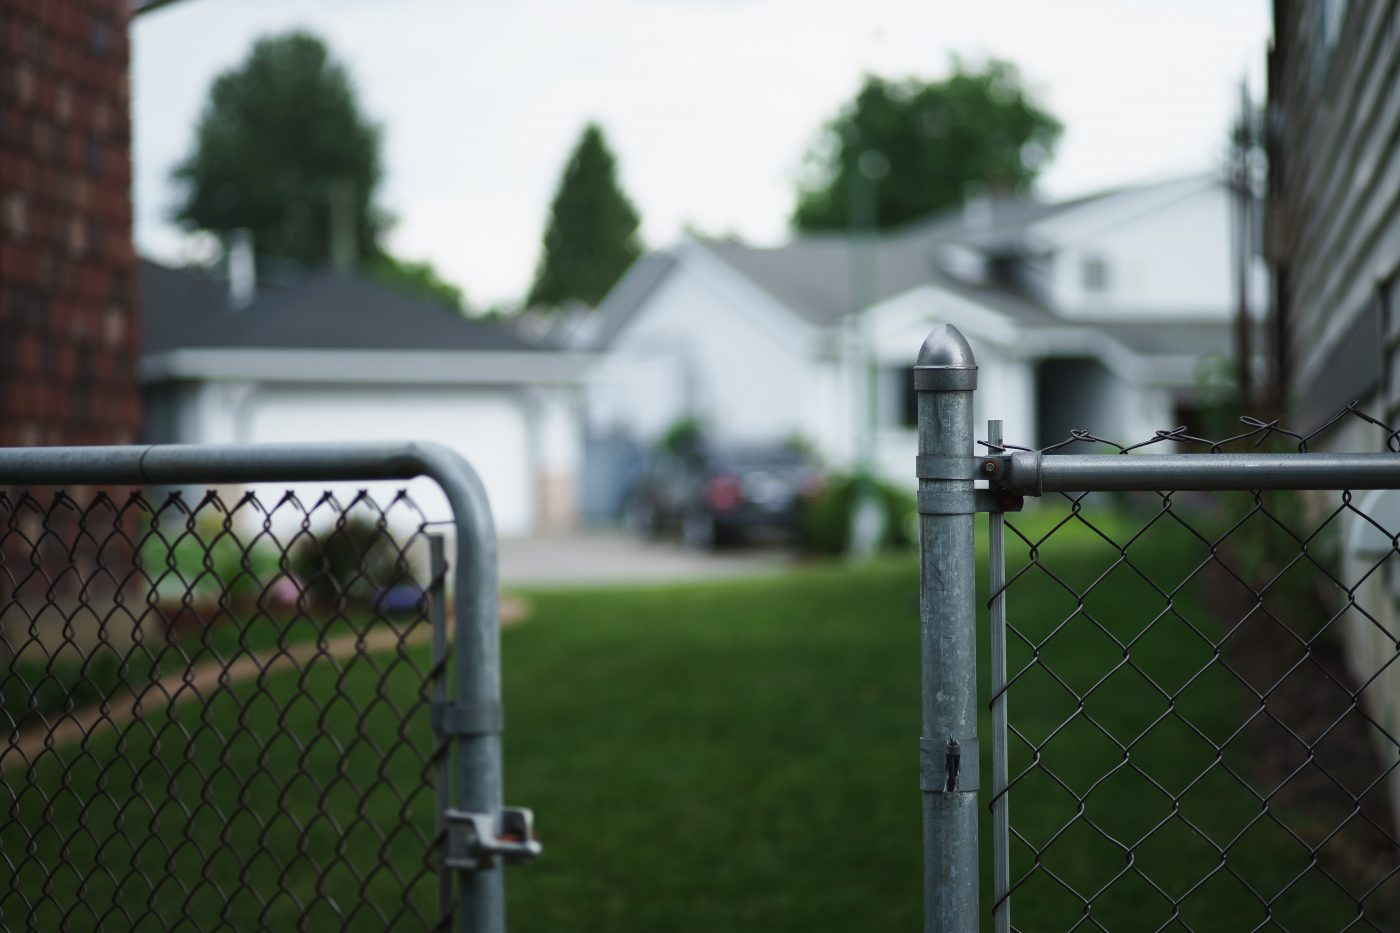 5 Things Property Owners Should Do Before Installing a Fence